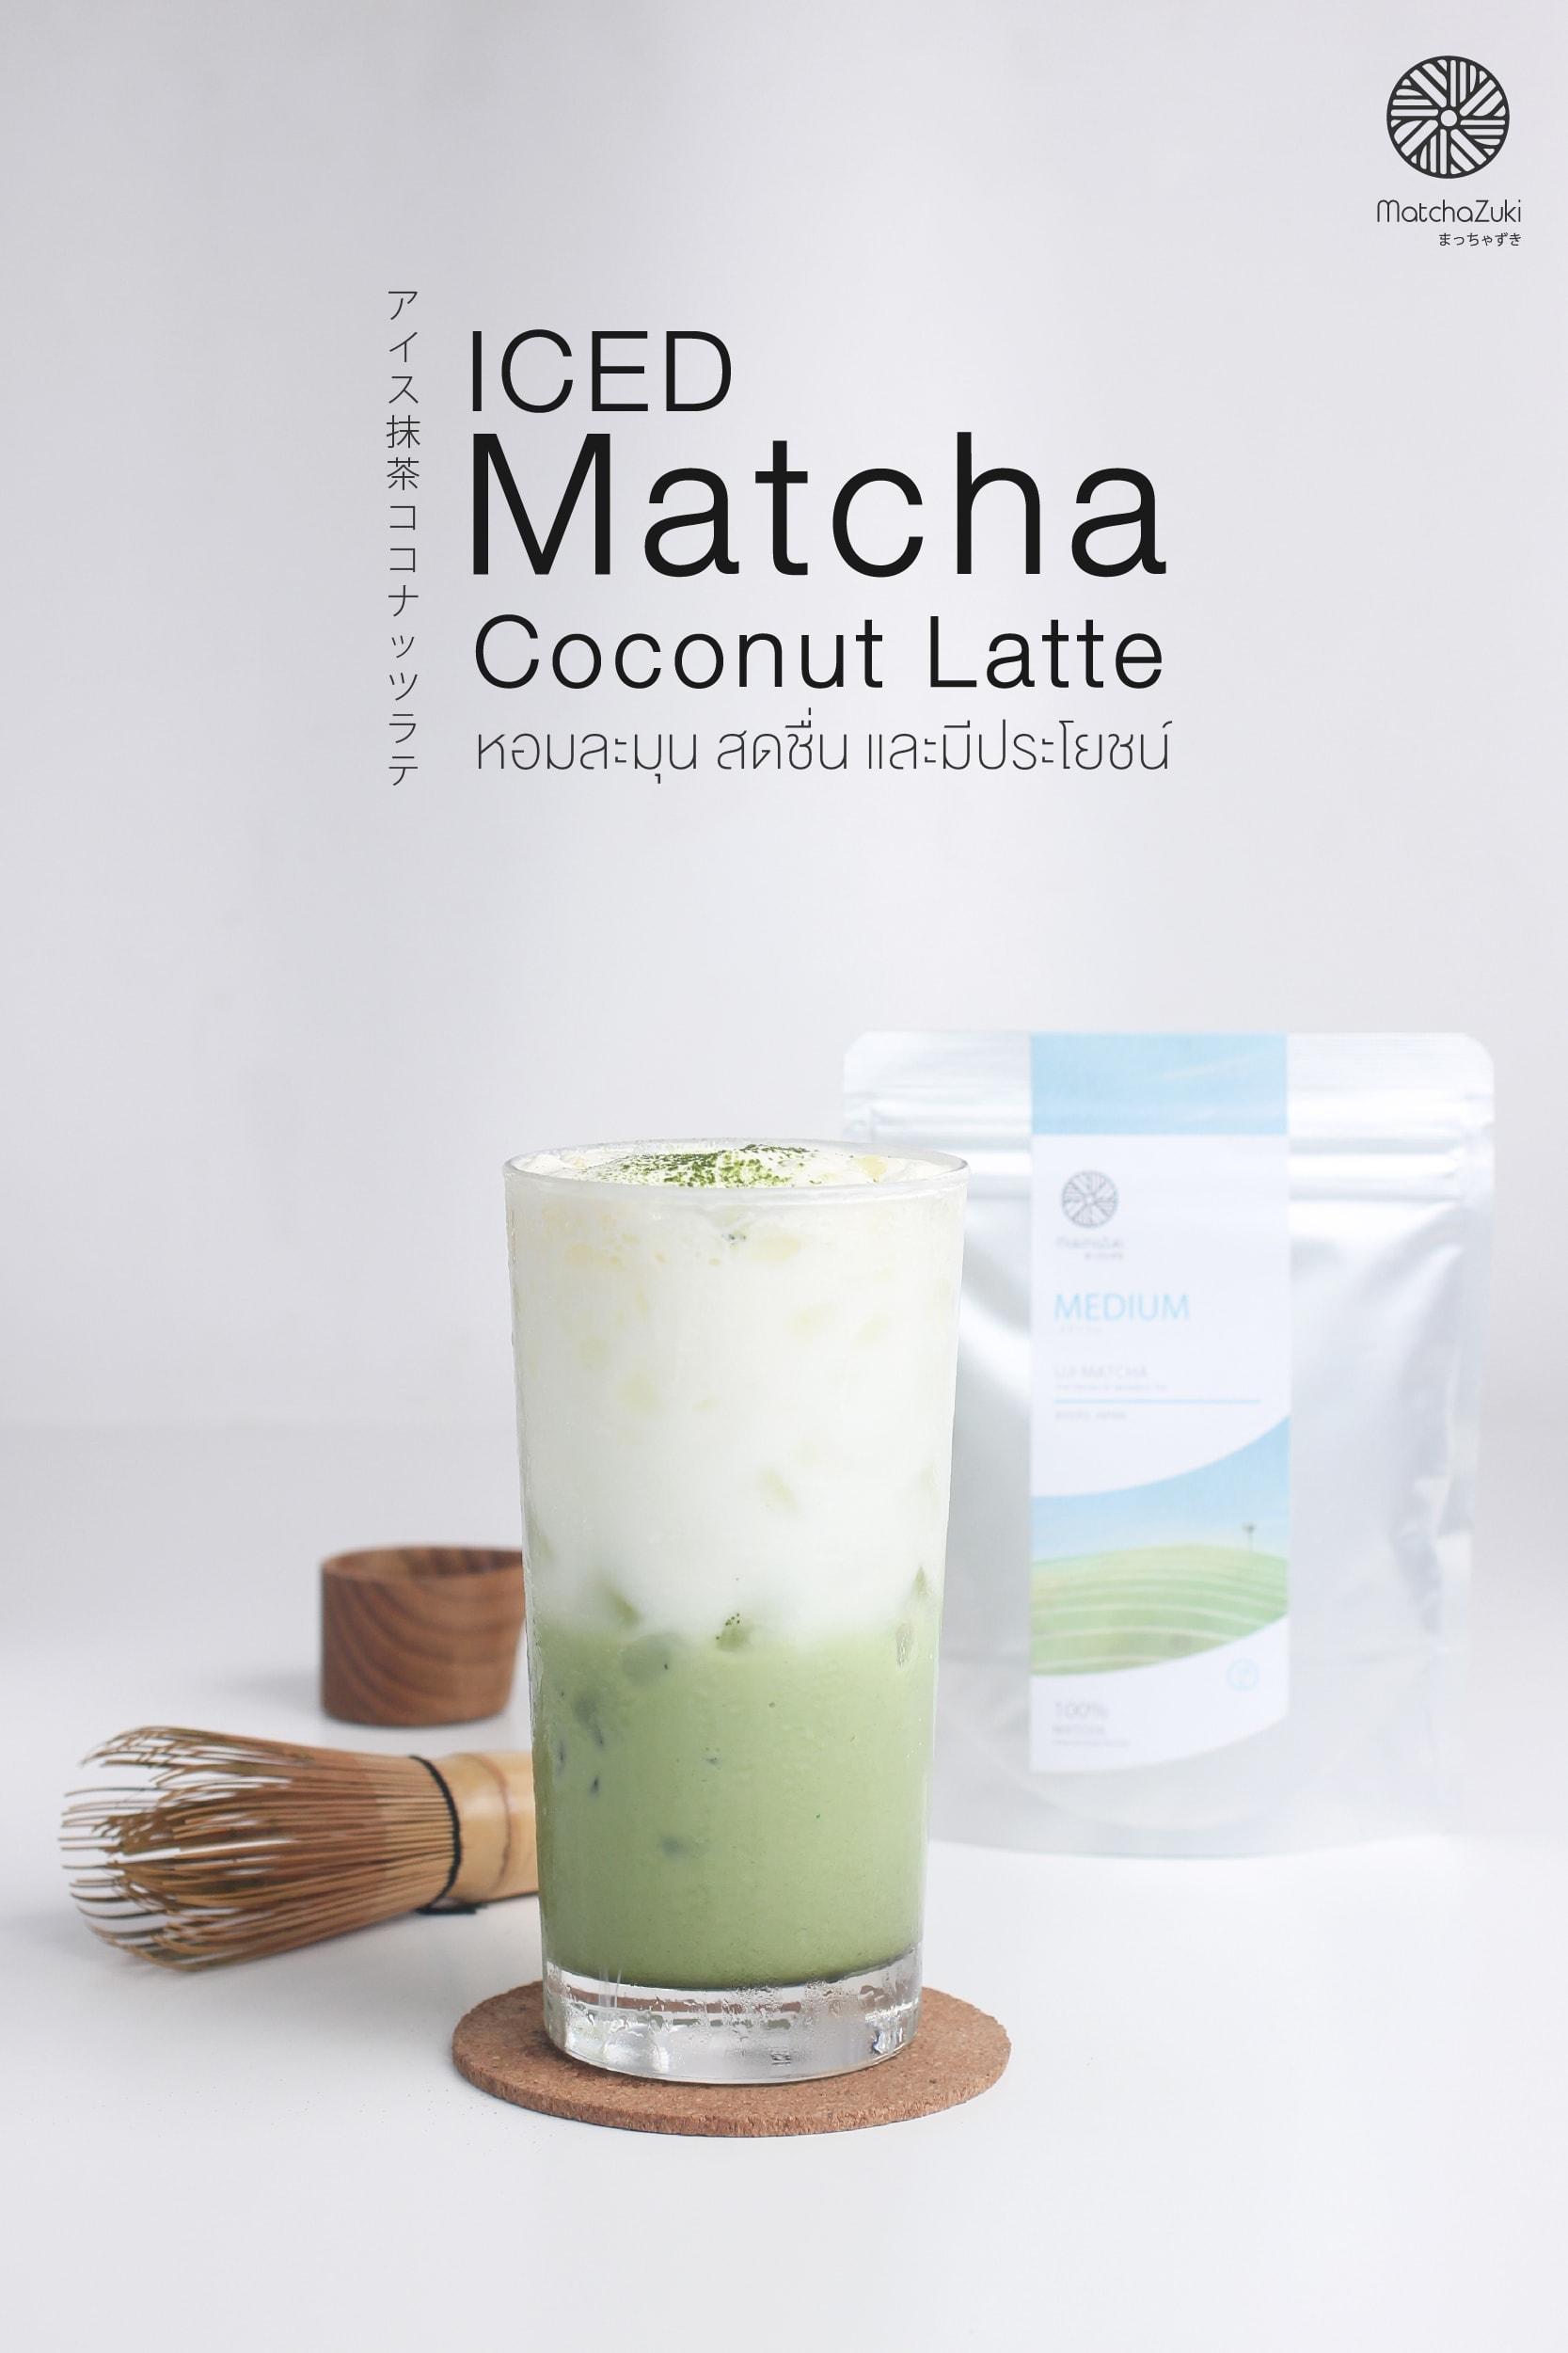 Iced Matcha Coconut Latte